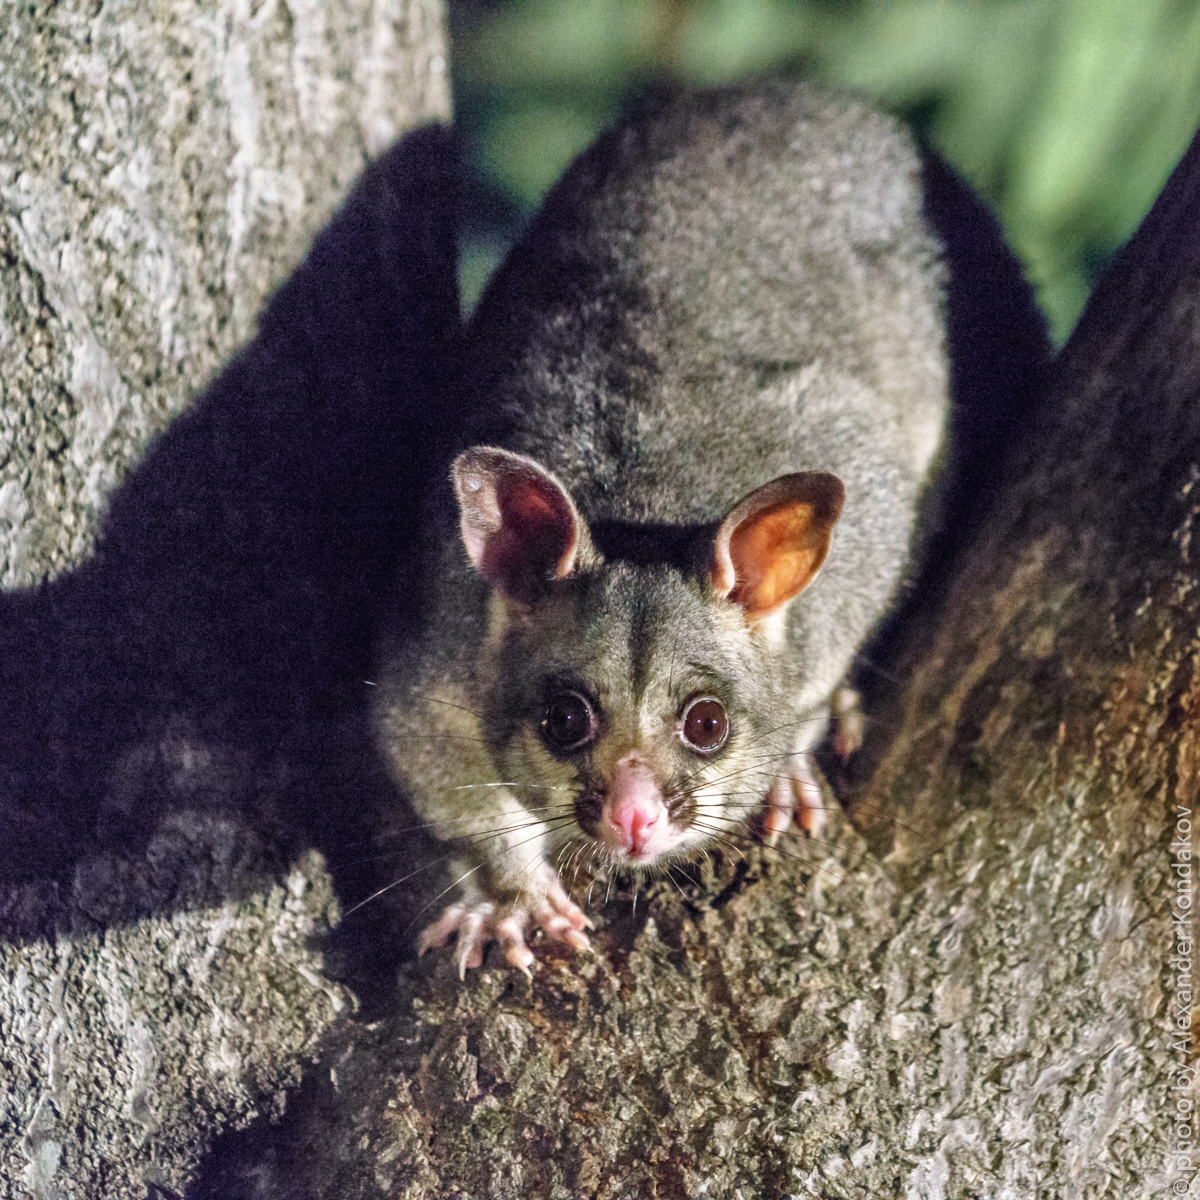 Brushtail possums